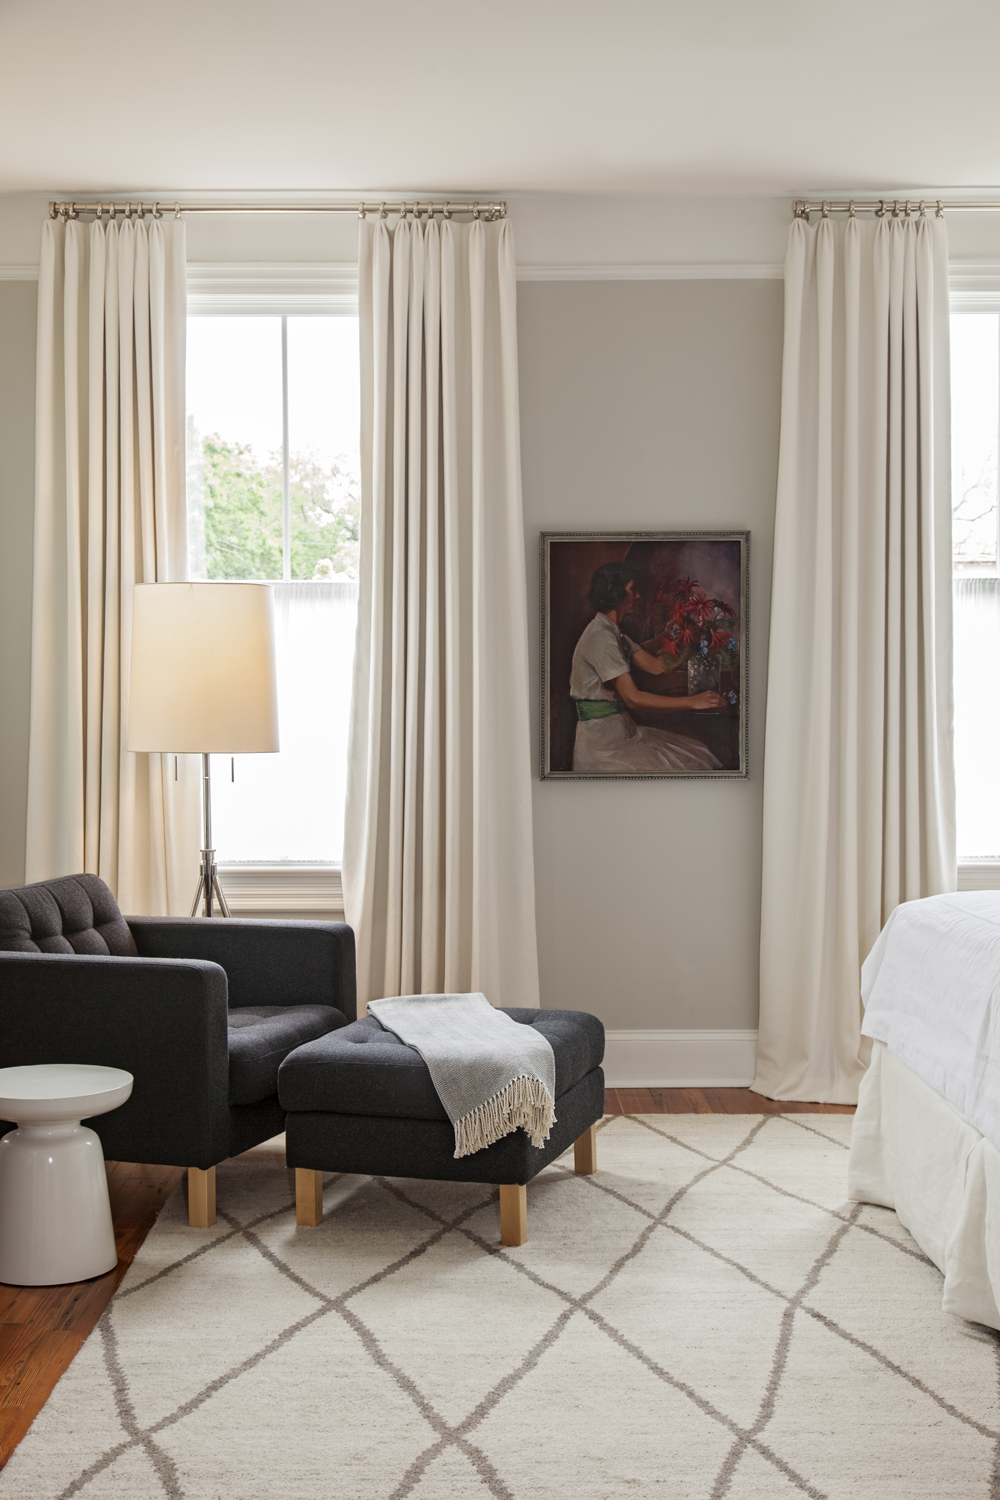 A Piece of the Past: A portrait of Lauren's great-grandmother adds personal flair to the master bedroom.